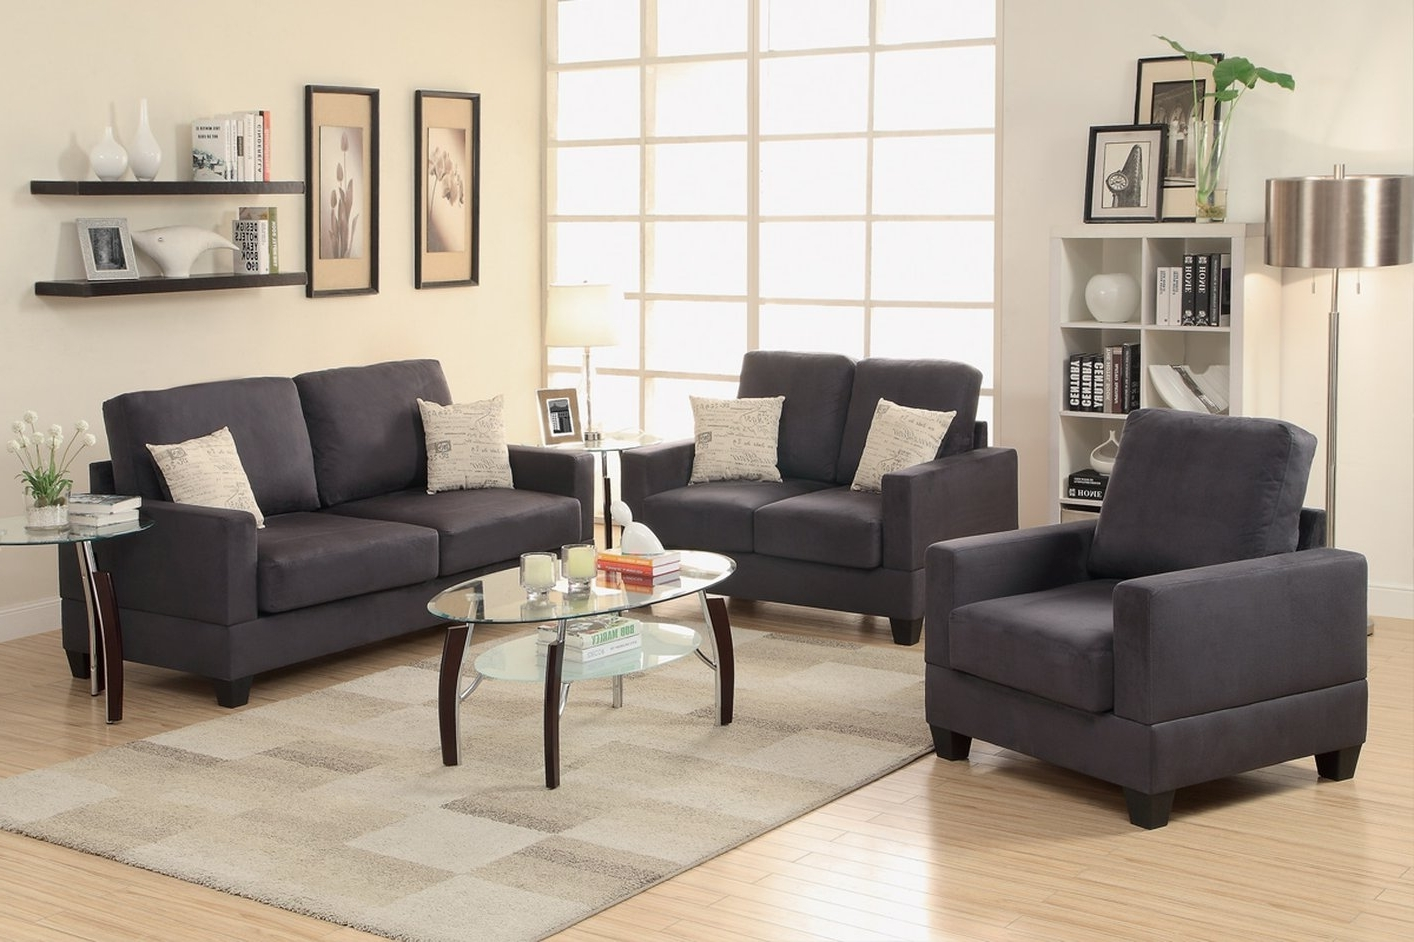 Sofa And Chairs – Home And Textiles Intended For Newest Sofa With Chairs (View 14 of 20)